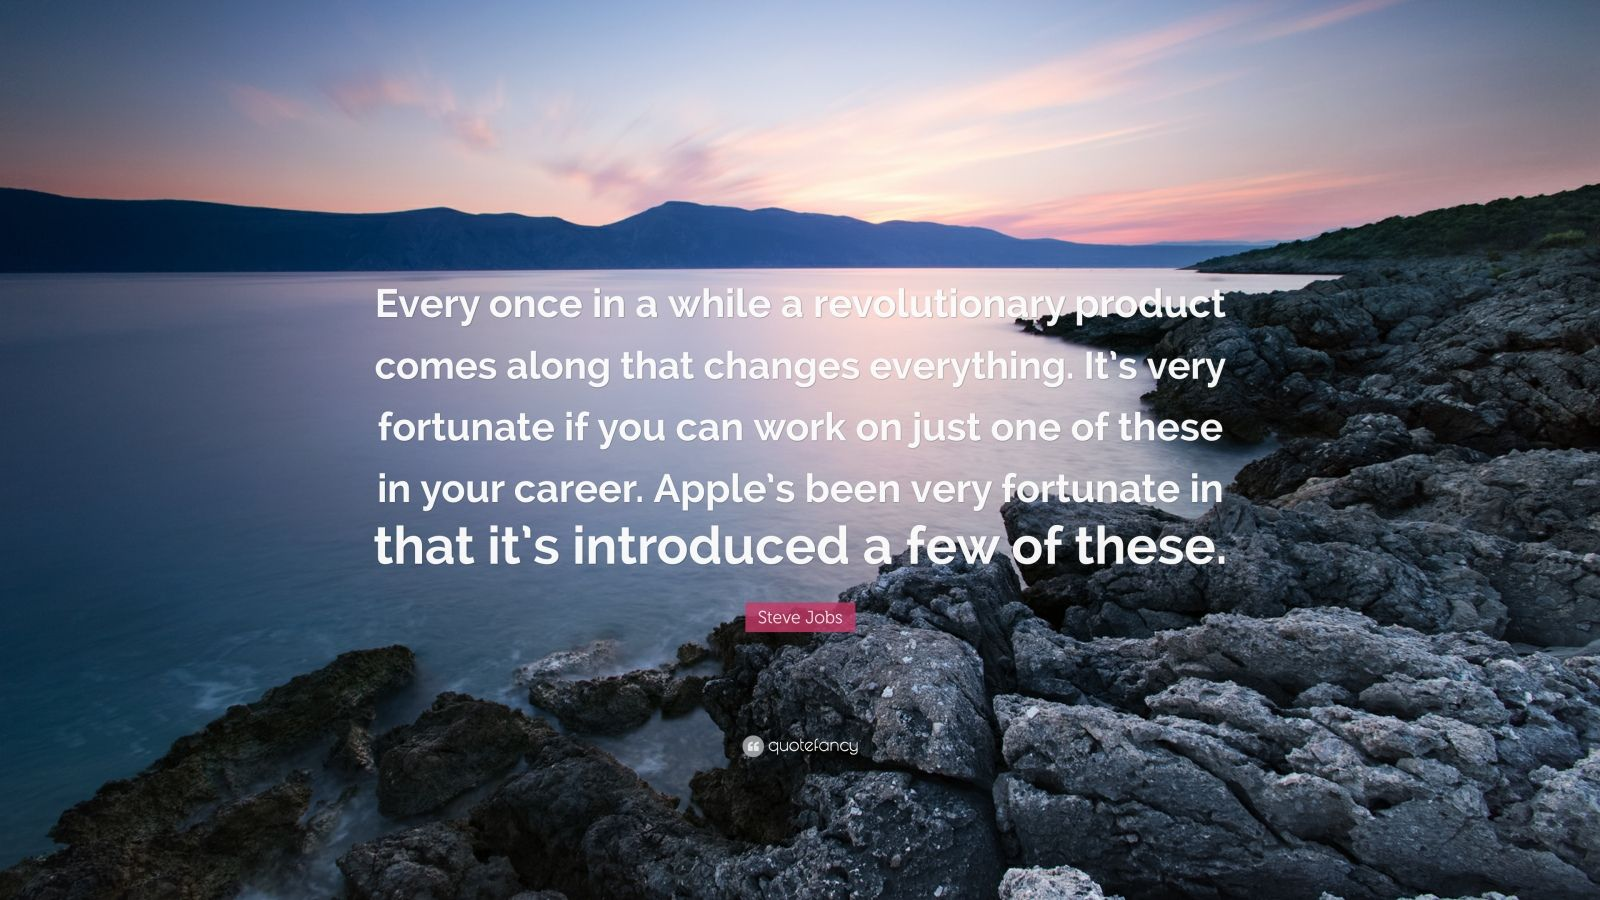 """Steve Jobs Quote: """"Every once in a while a revolutionary product comes along that changes everything. It's very fortunate if you can work on just one of these in your career. Apple's been very fortunate in that it's introduced a few of these."""""""